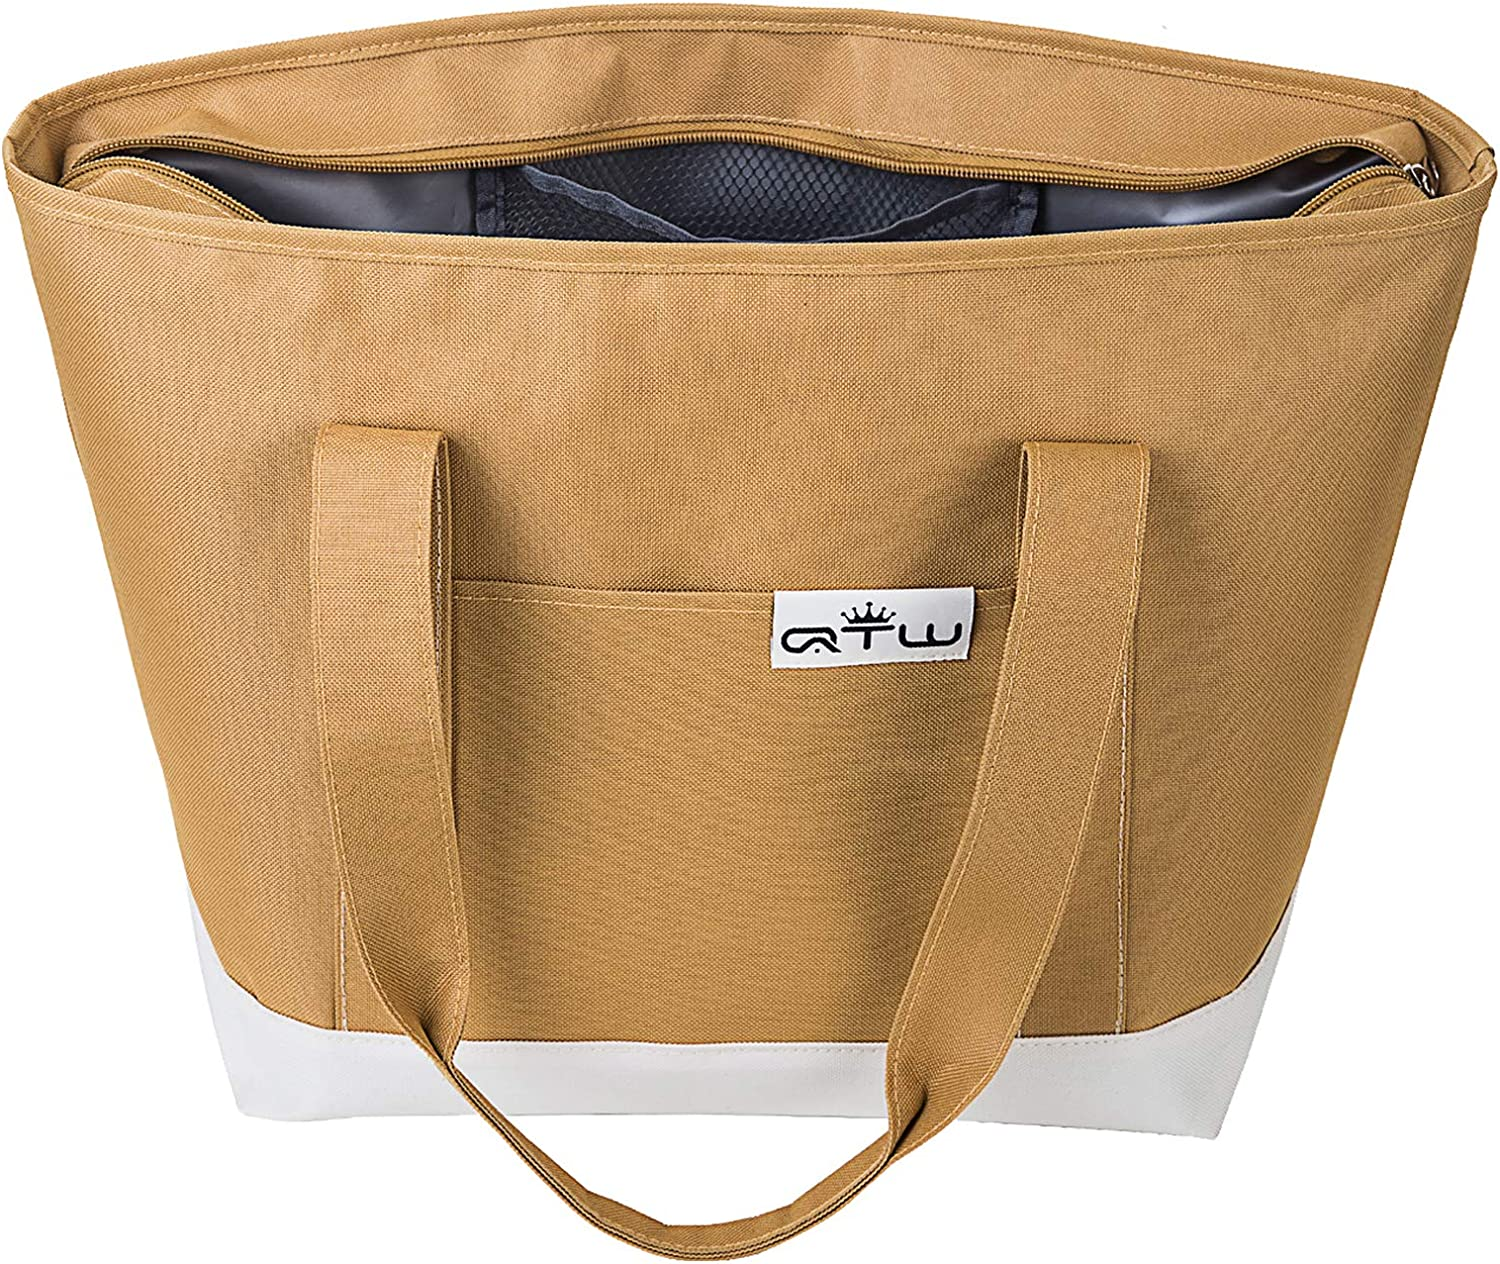 Jumbo Insulated Cooler Bag, Thermal Tote Bag for Grocery Shopping with Zipper, Premium Quality Soft Sided Food Transport Bag, Travel Cooler or Picnic Cooler (Honey Beige-28L)